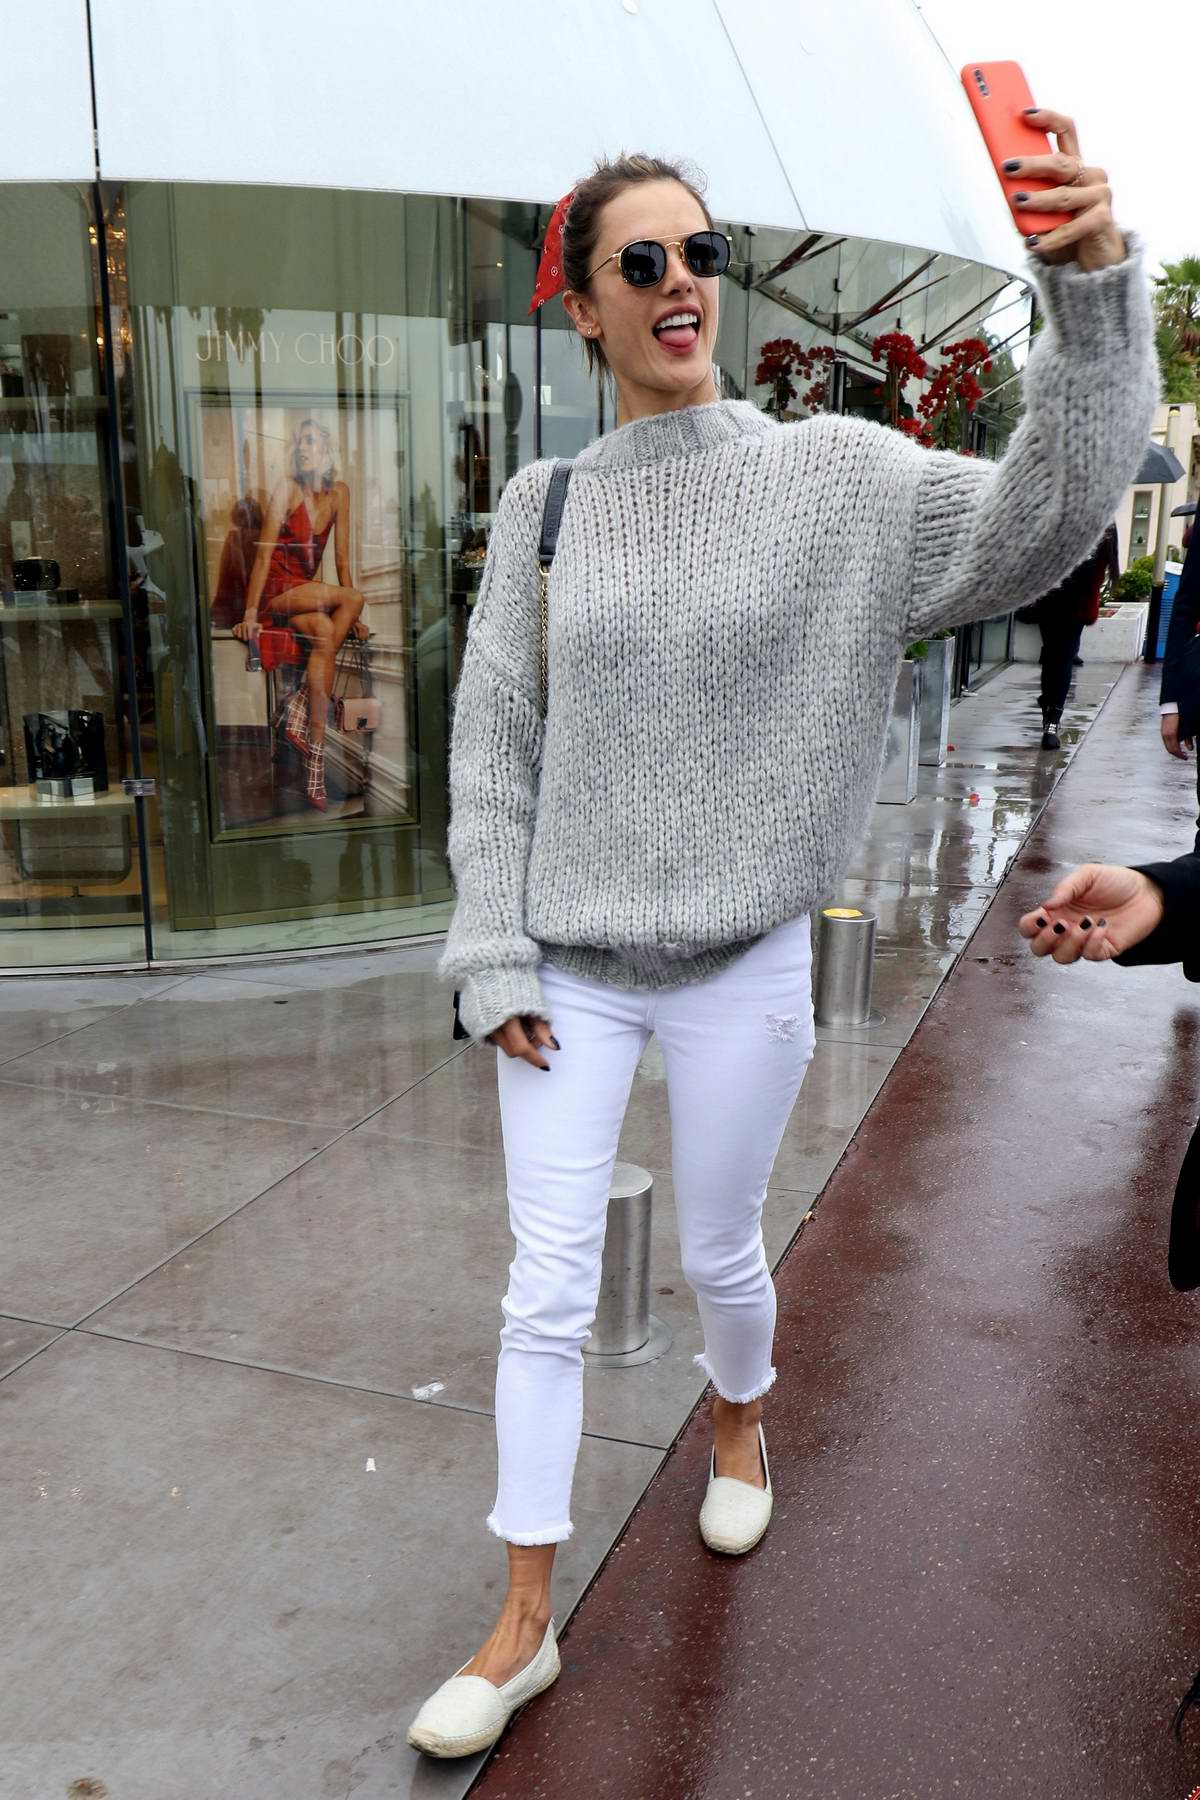 Alessandra Ambrosio steps out in a grey knitted sweater and white jeans while having fun with her phone in Cannes, France